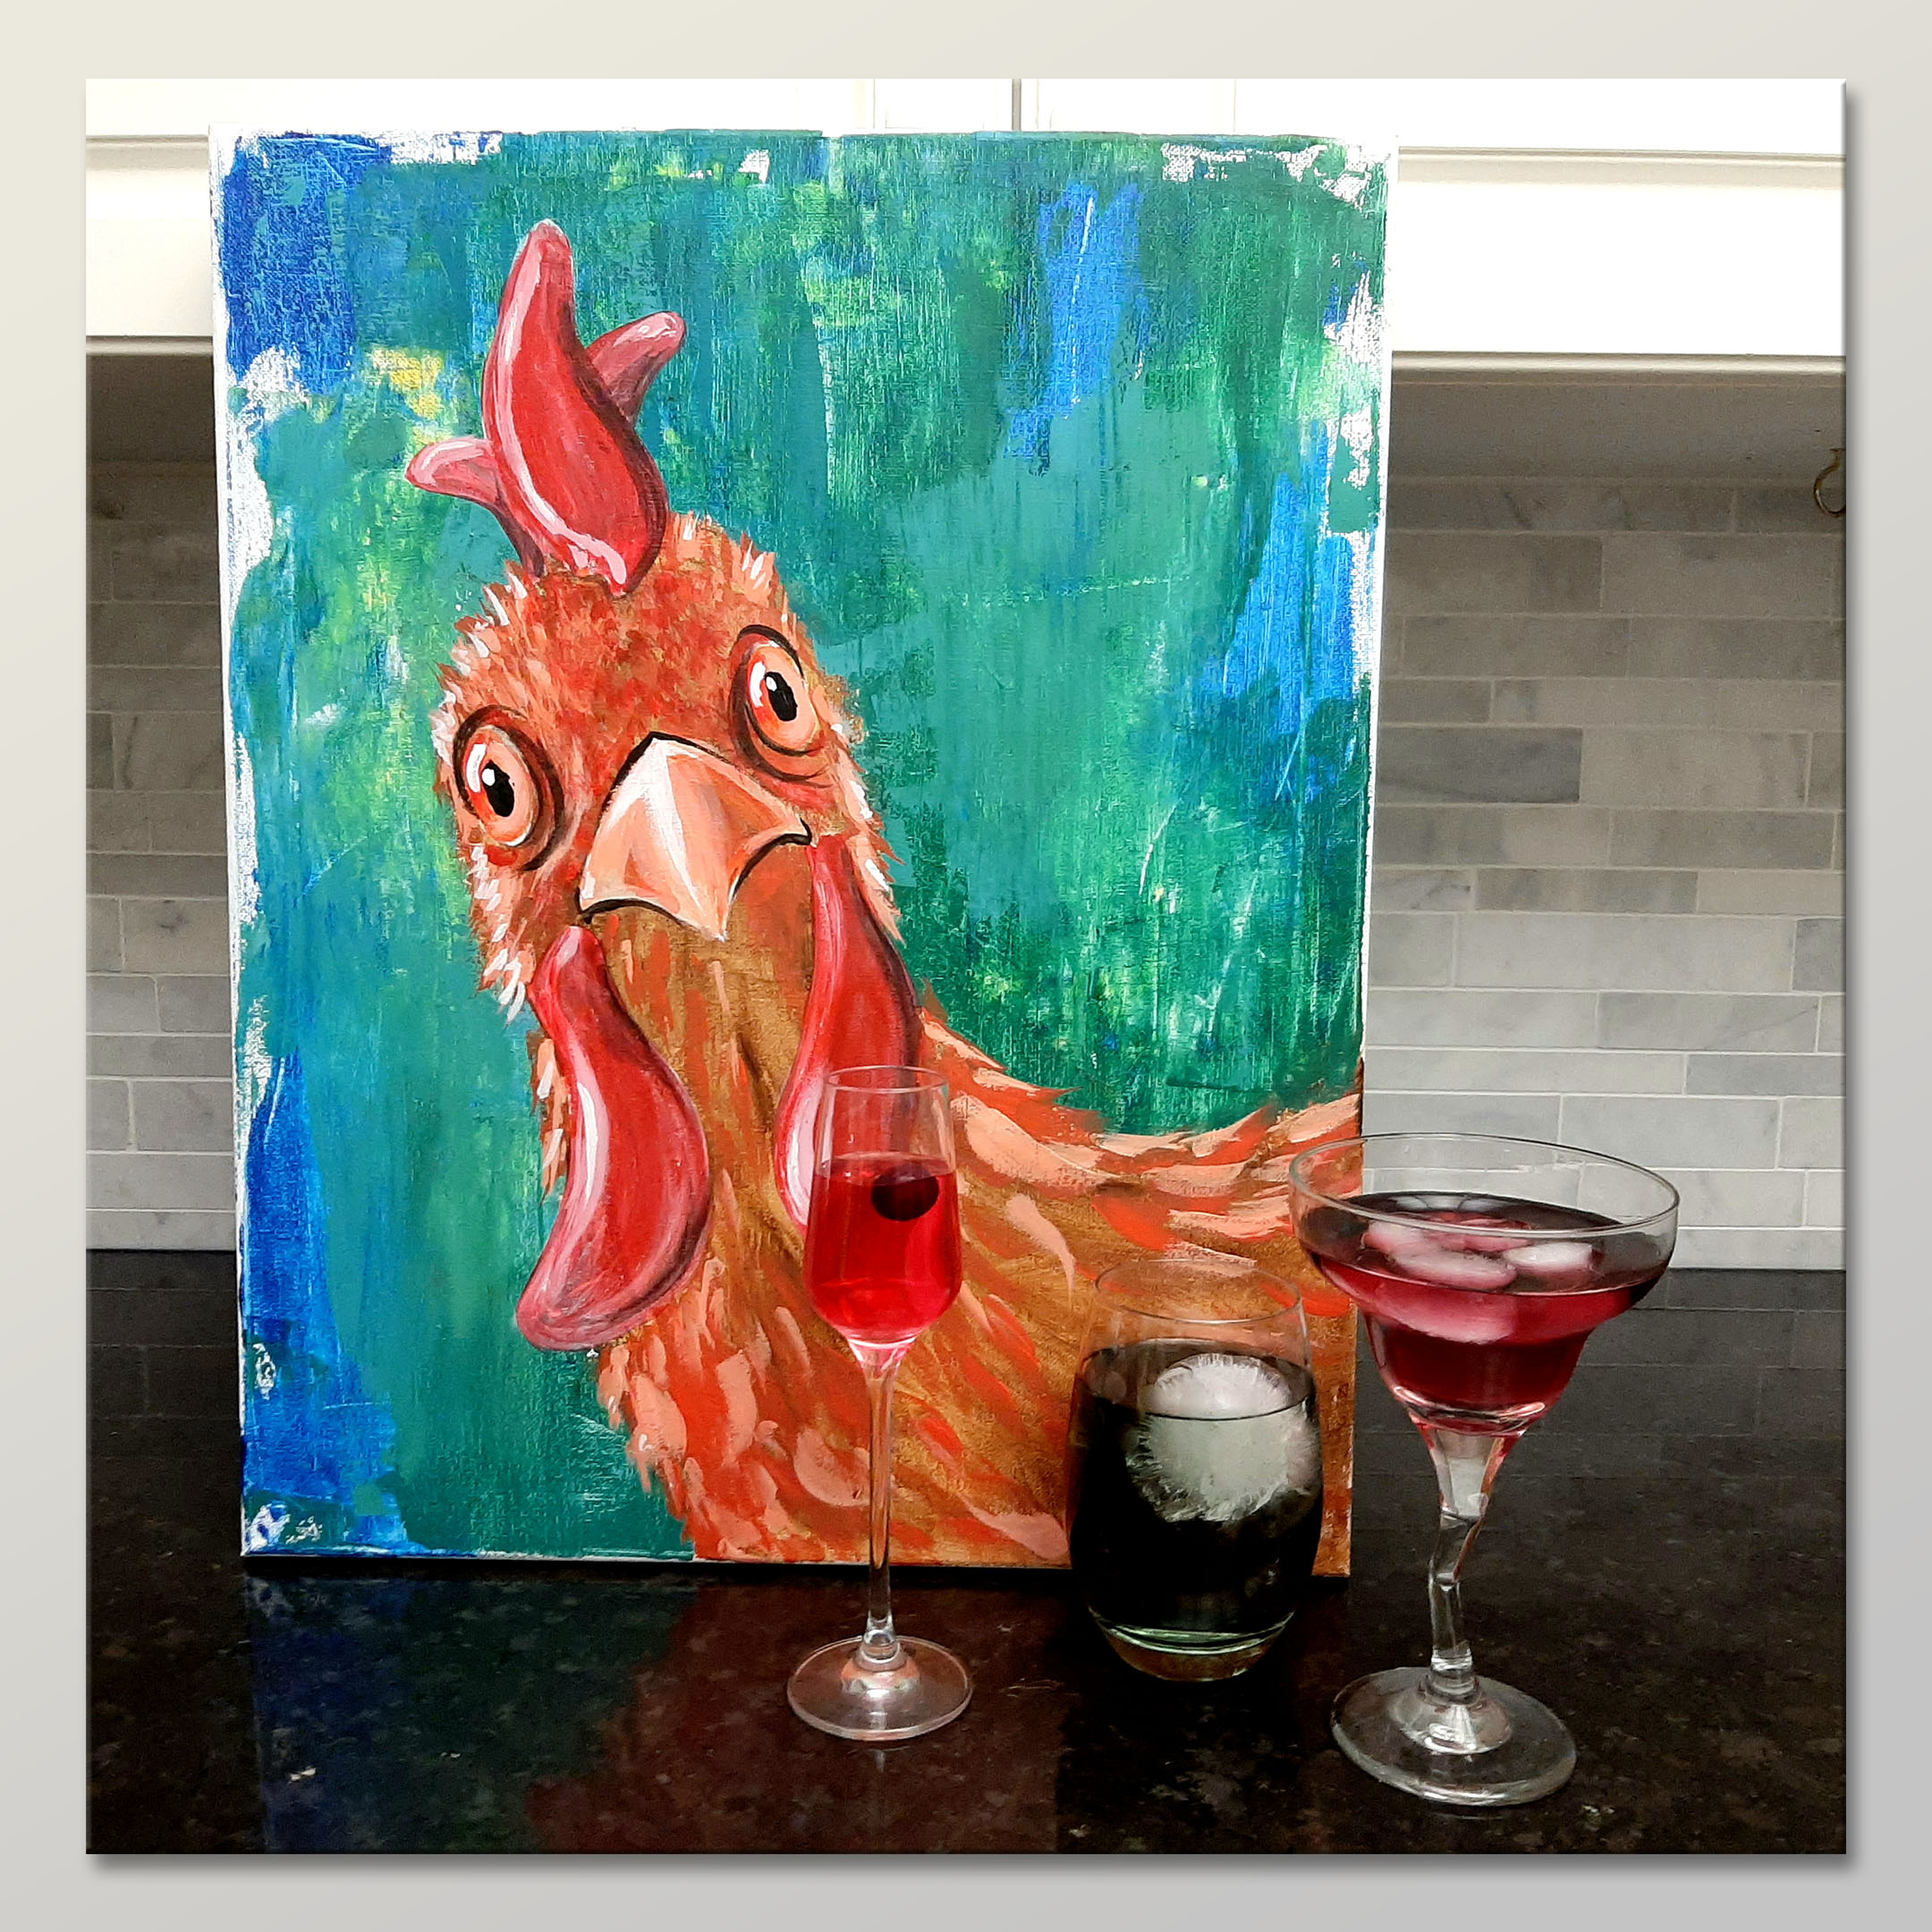 A Chicken Run  Painting and Mixology experience project by Yaymaker